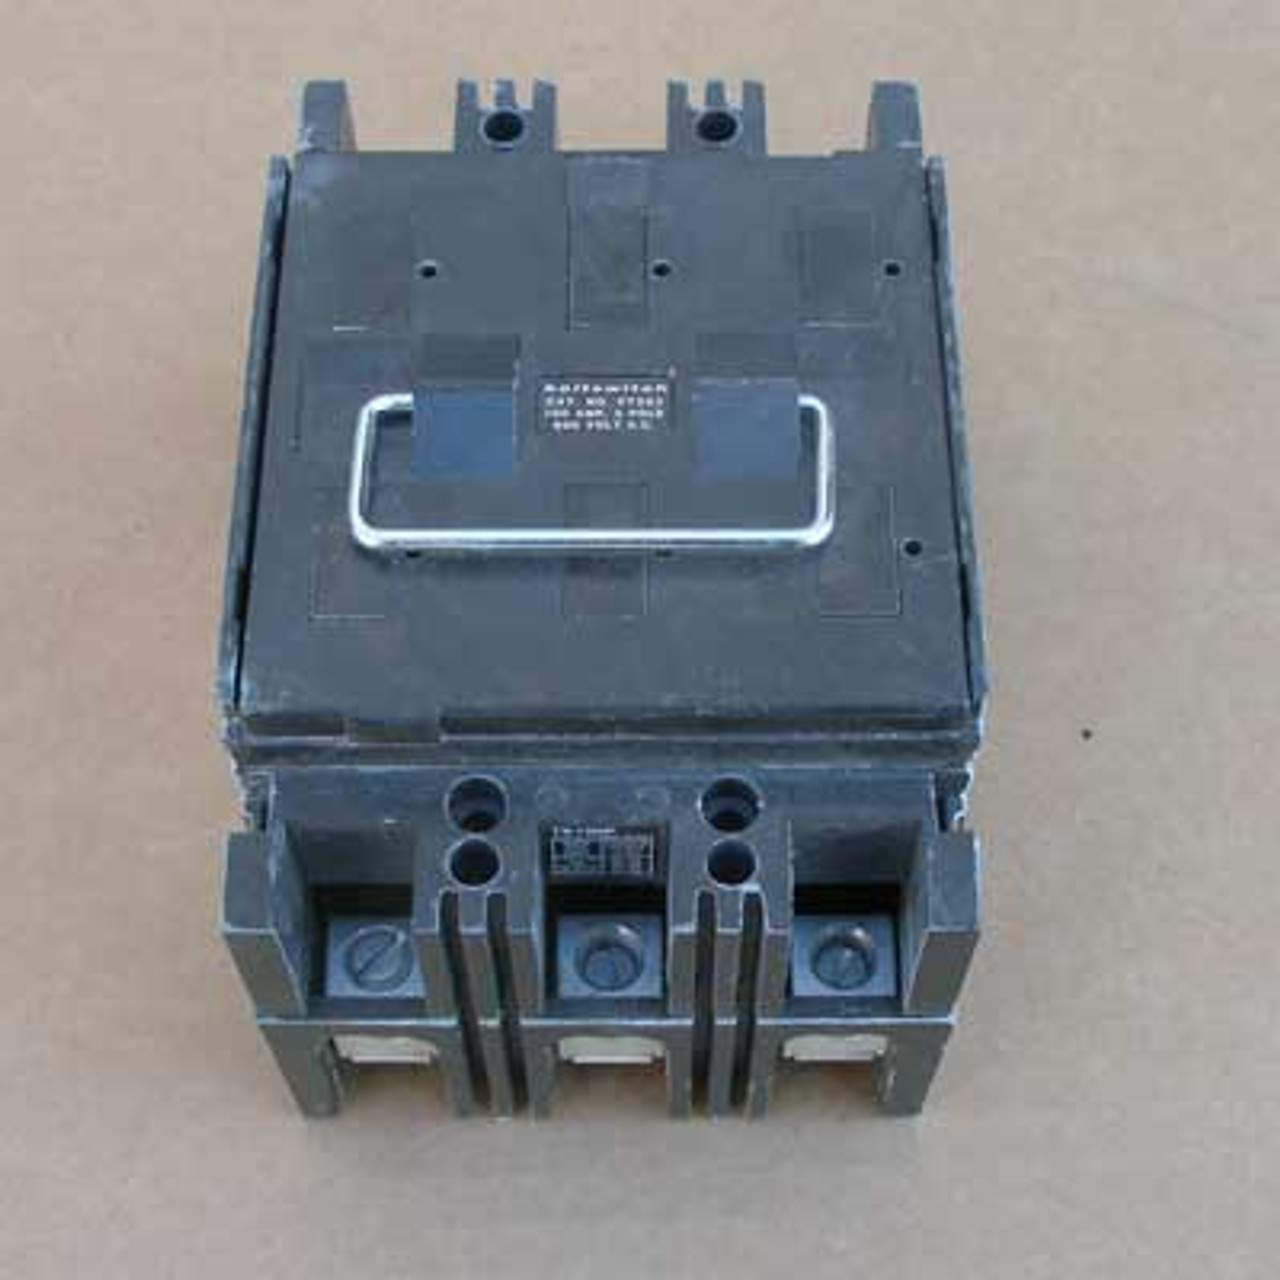 Boltswitch PT323 3 Pole 100 Amp 240V Pullout Switch - Used